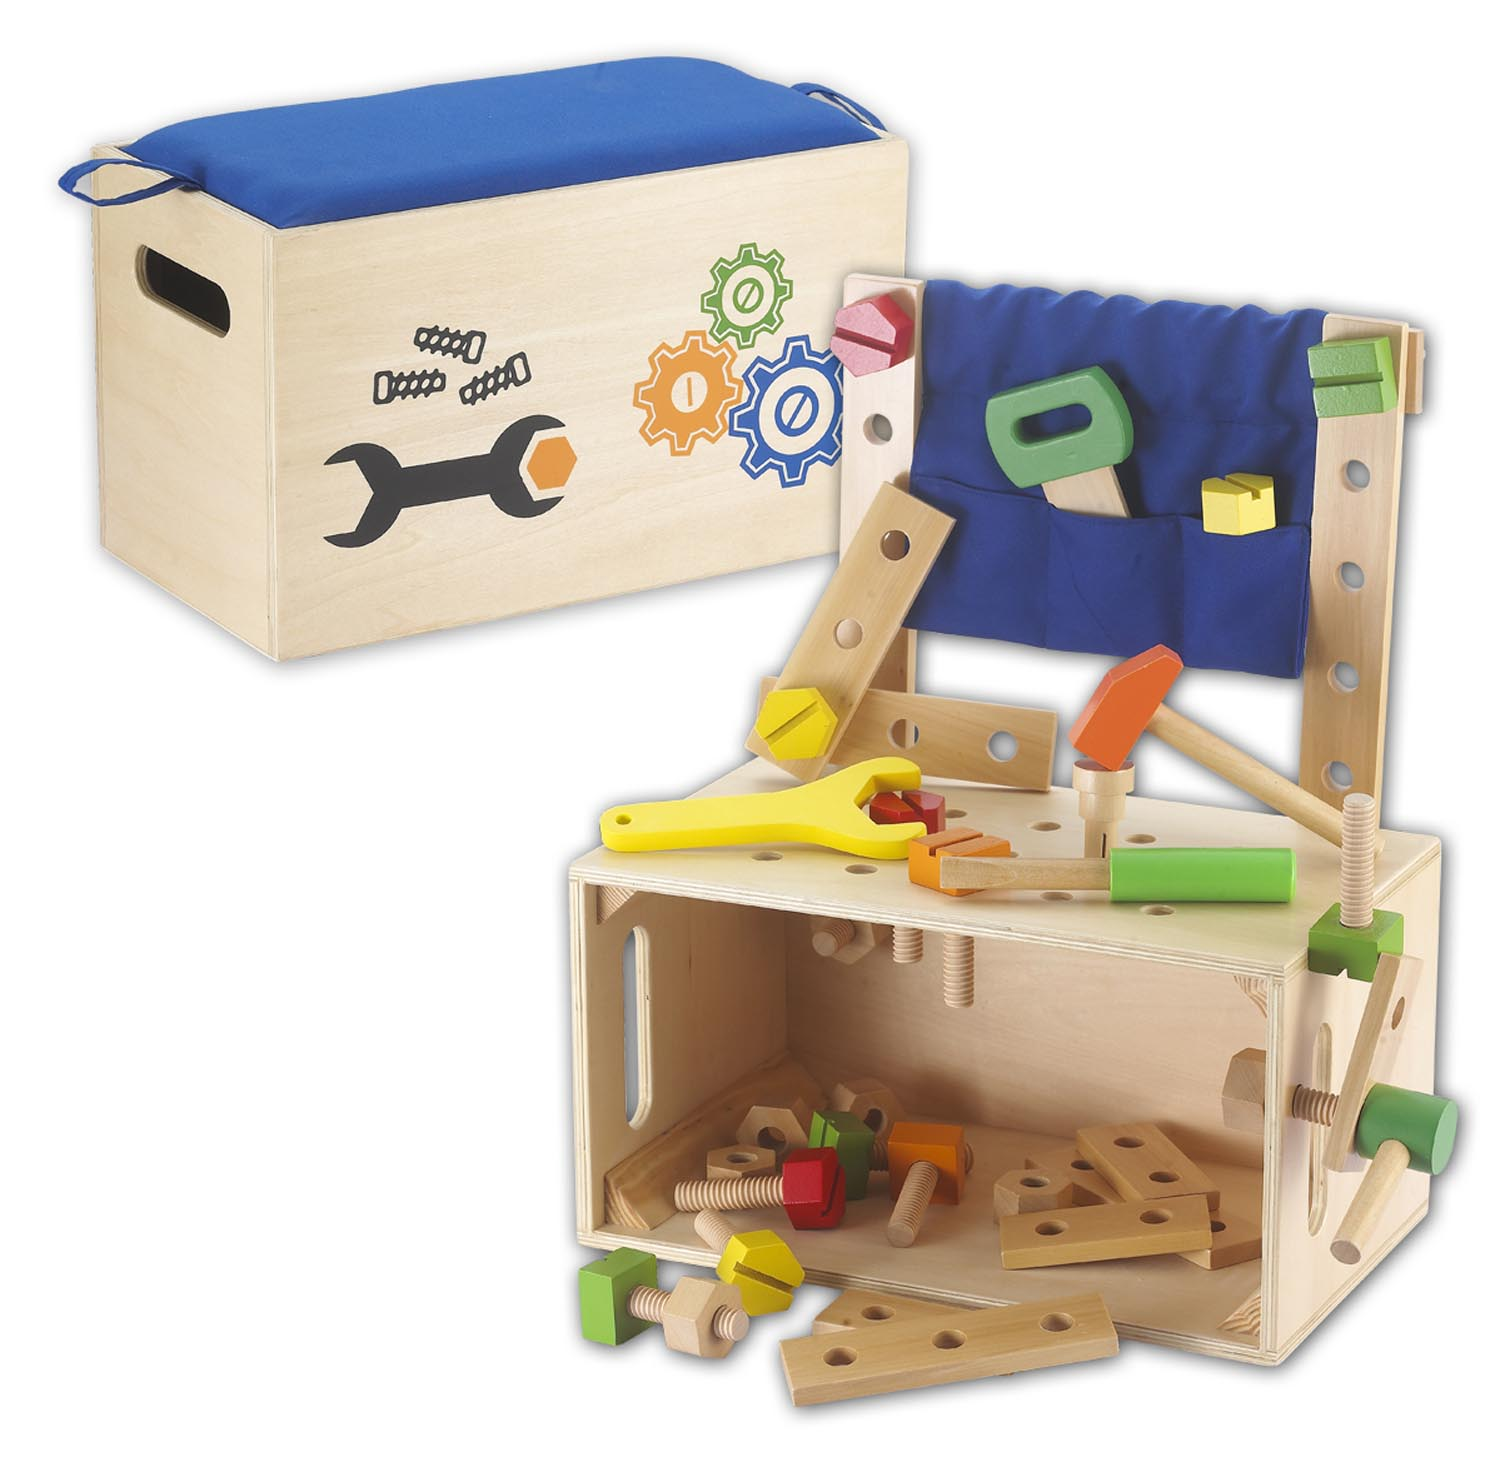 Kids Toy Work Bench Tool Bench Tool Box Tool From Wood Ebay